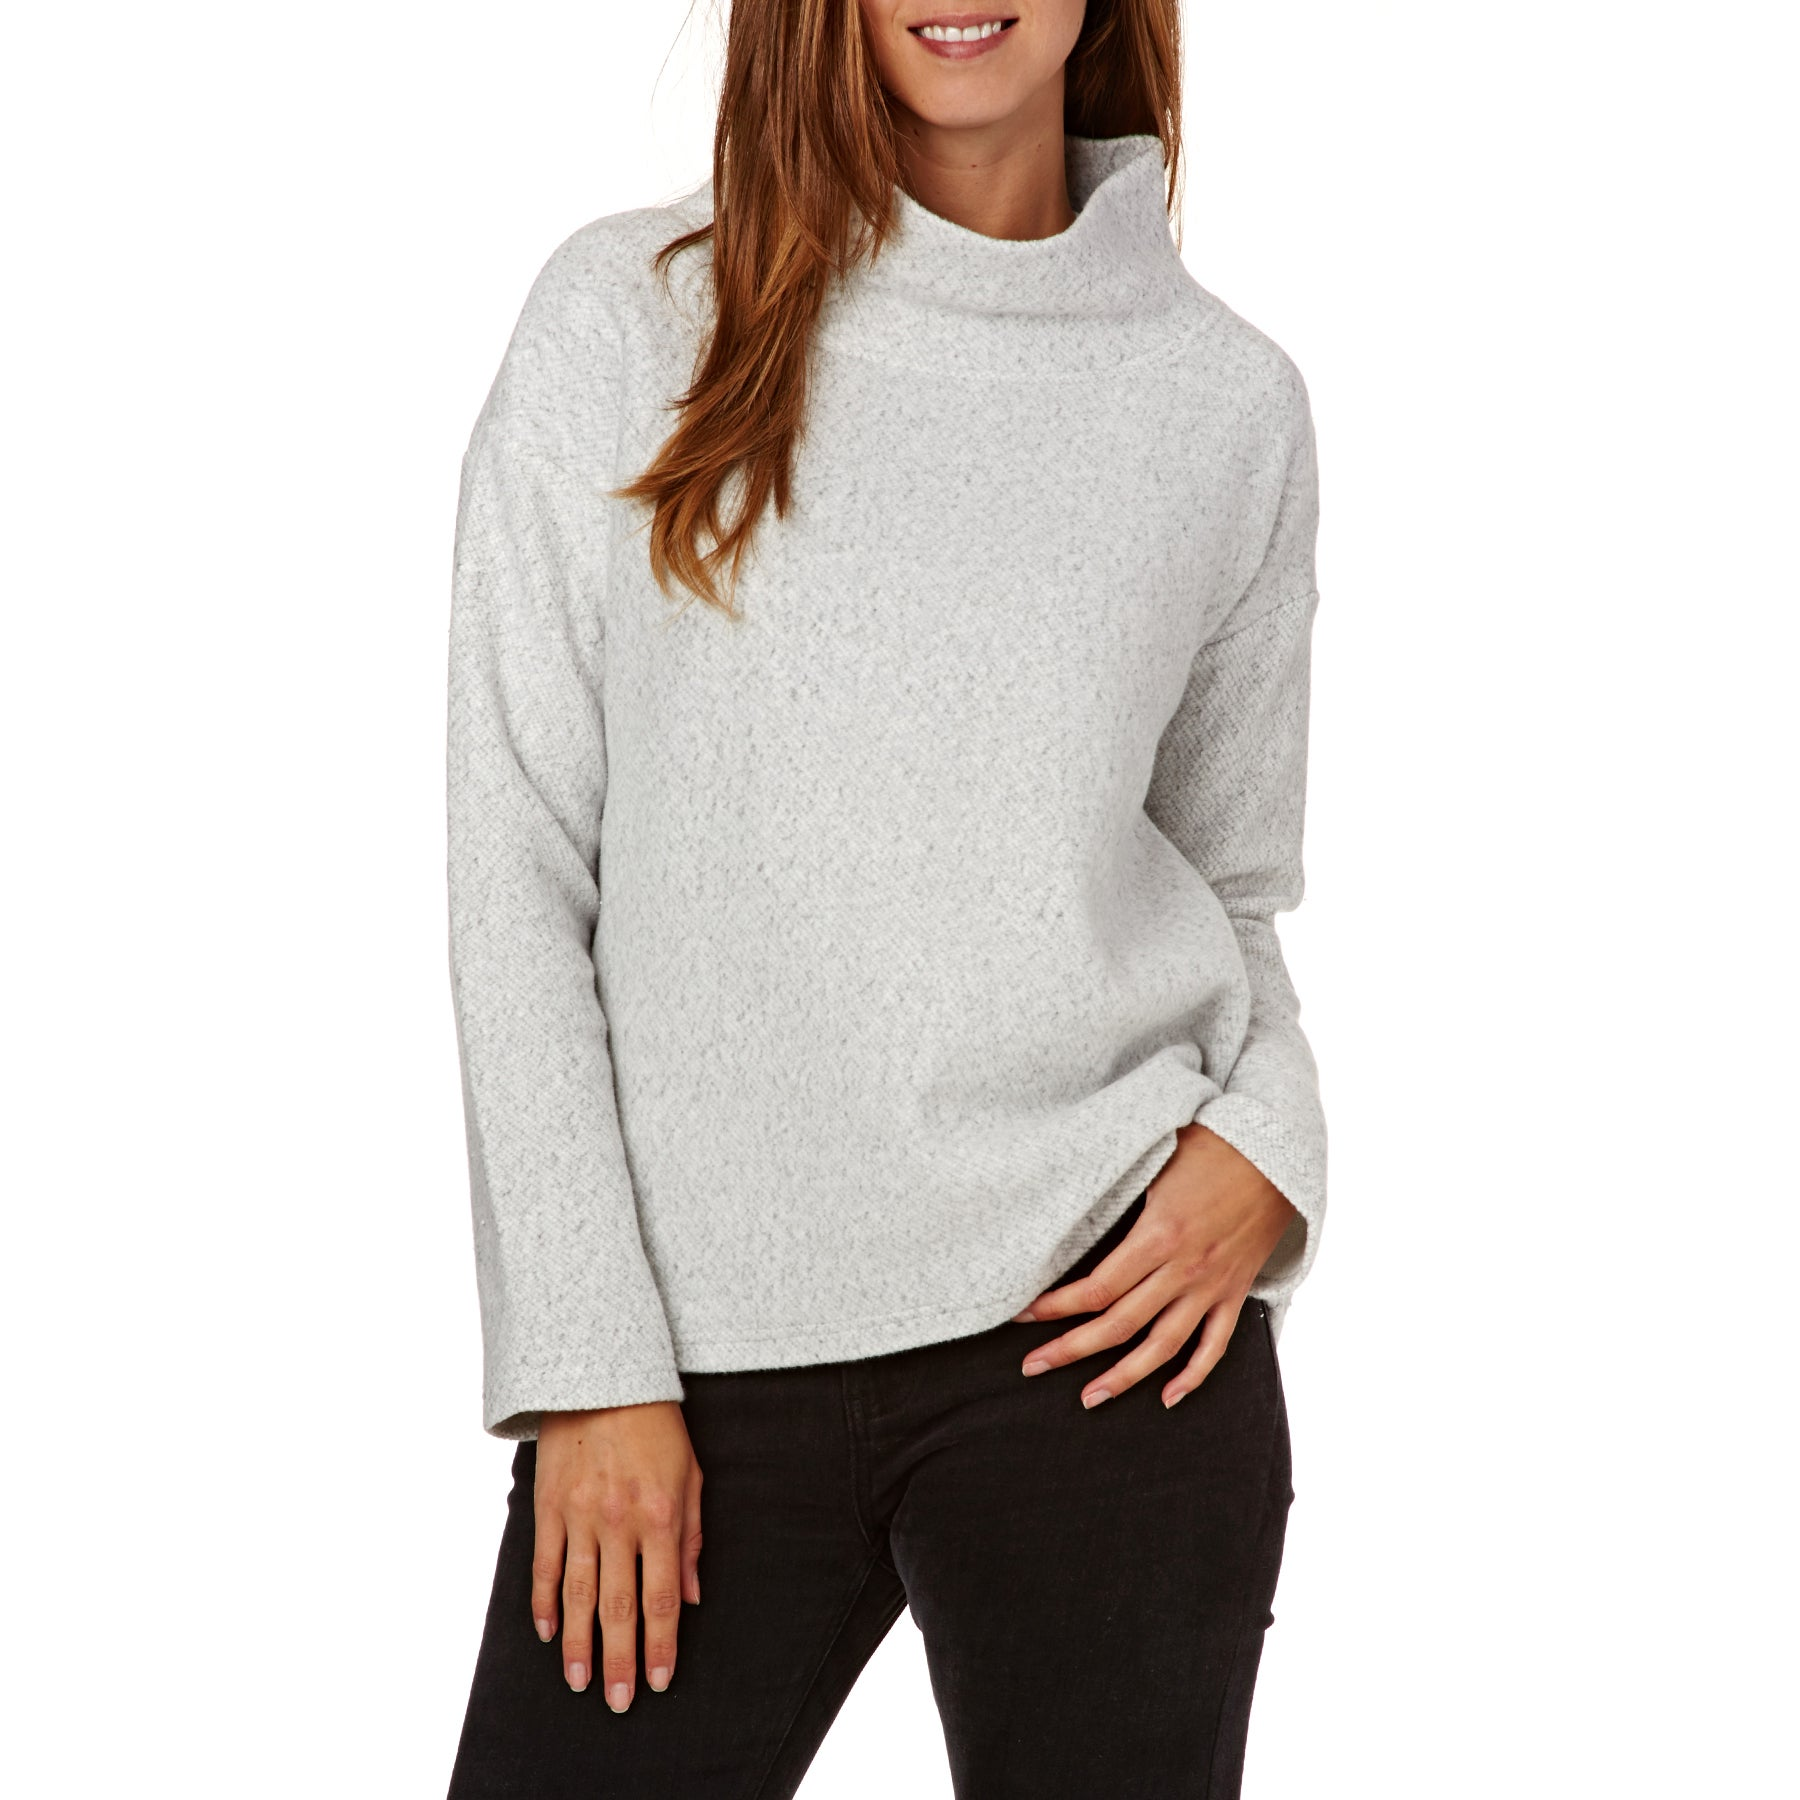 SWELL Les Arcs Funnel Neck Womens Sweater - Light Grey Marle